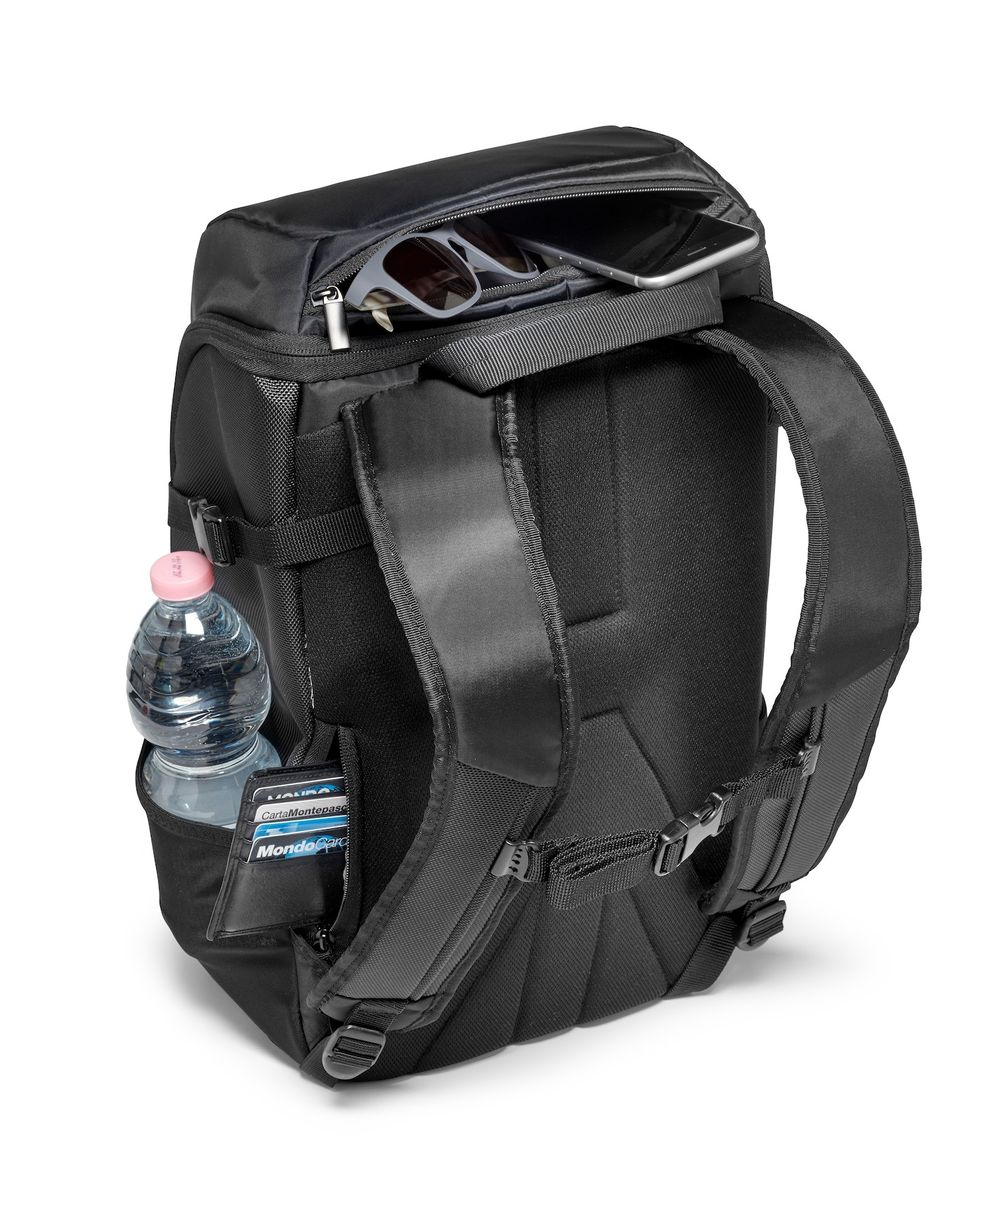 7839ca4ecfa7 Bags   Cases  Manfrotto CSC Advanced Camera Backpack Compact 1 for Mirrorless  Cameras (Black) at Hunts Photo   Video